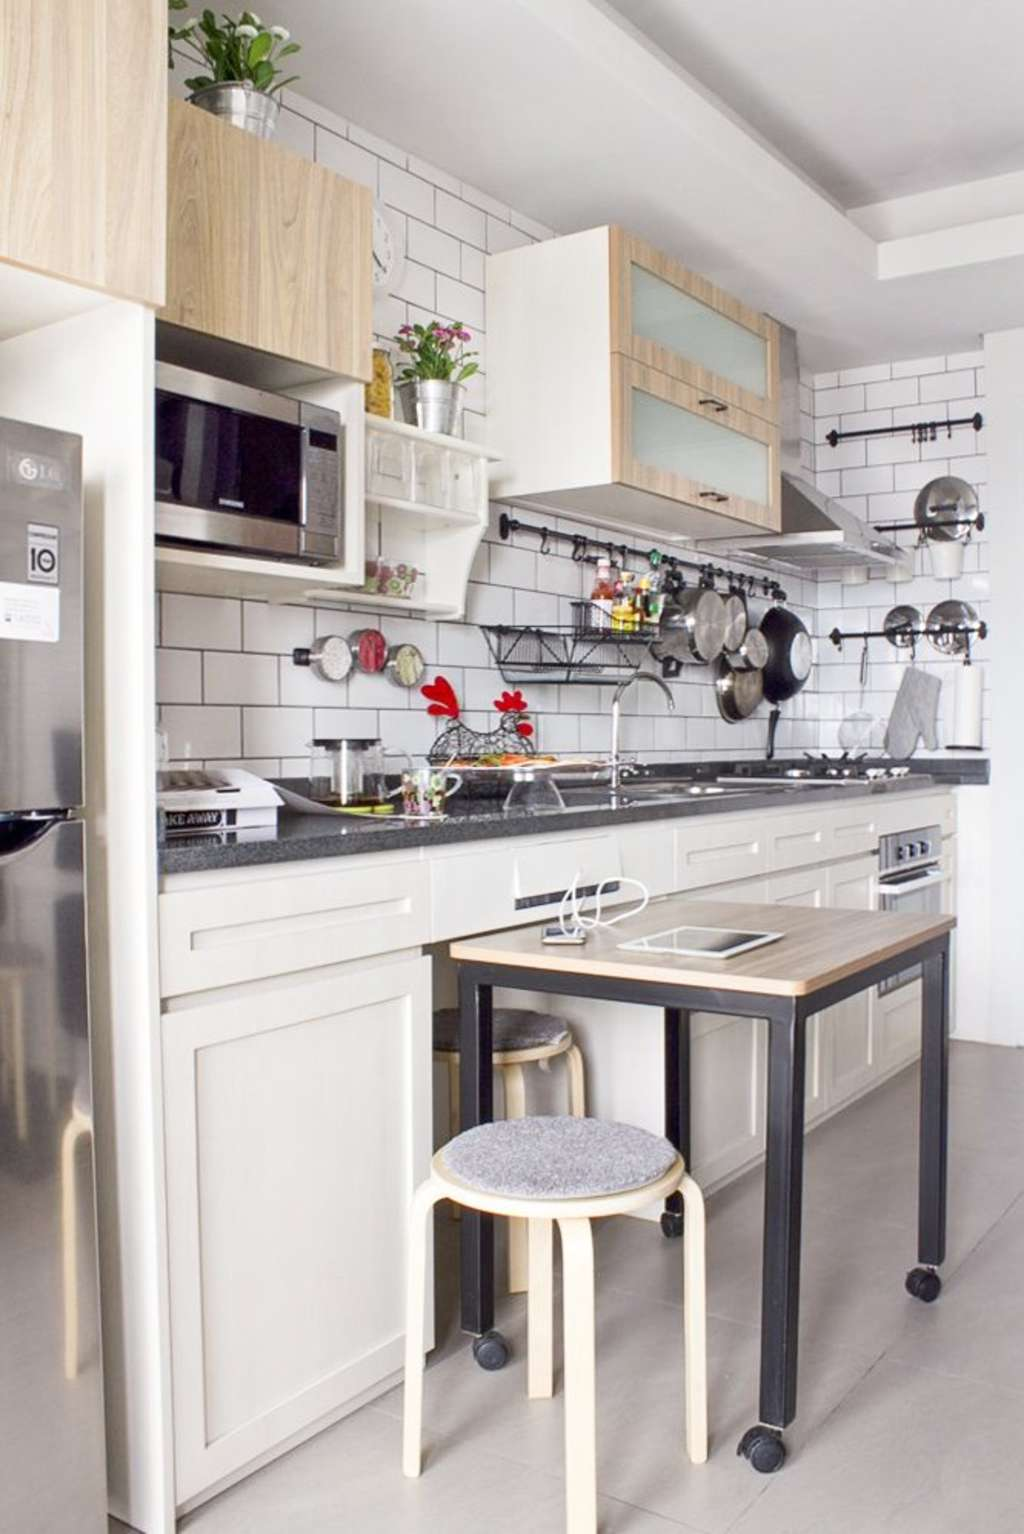 The Kitchen in This Tiny Apartment Is Smart Yet Crazy | Kitchn